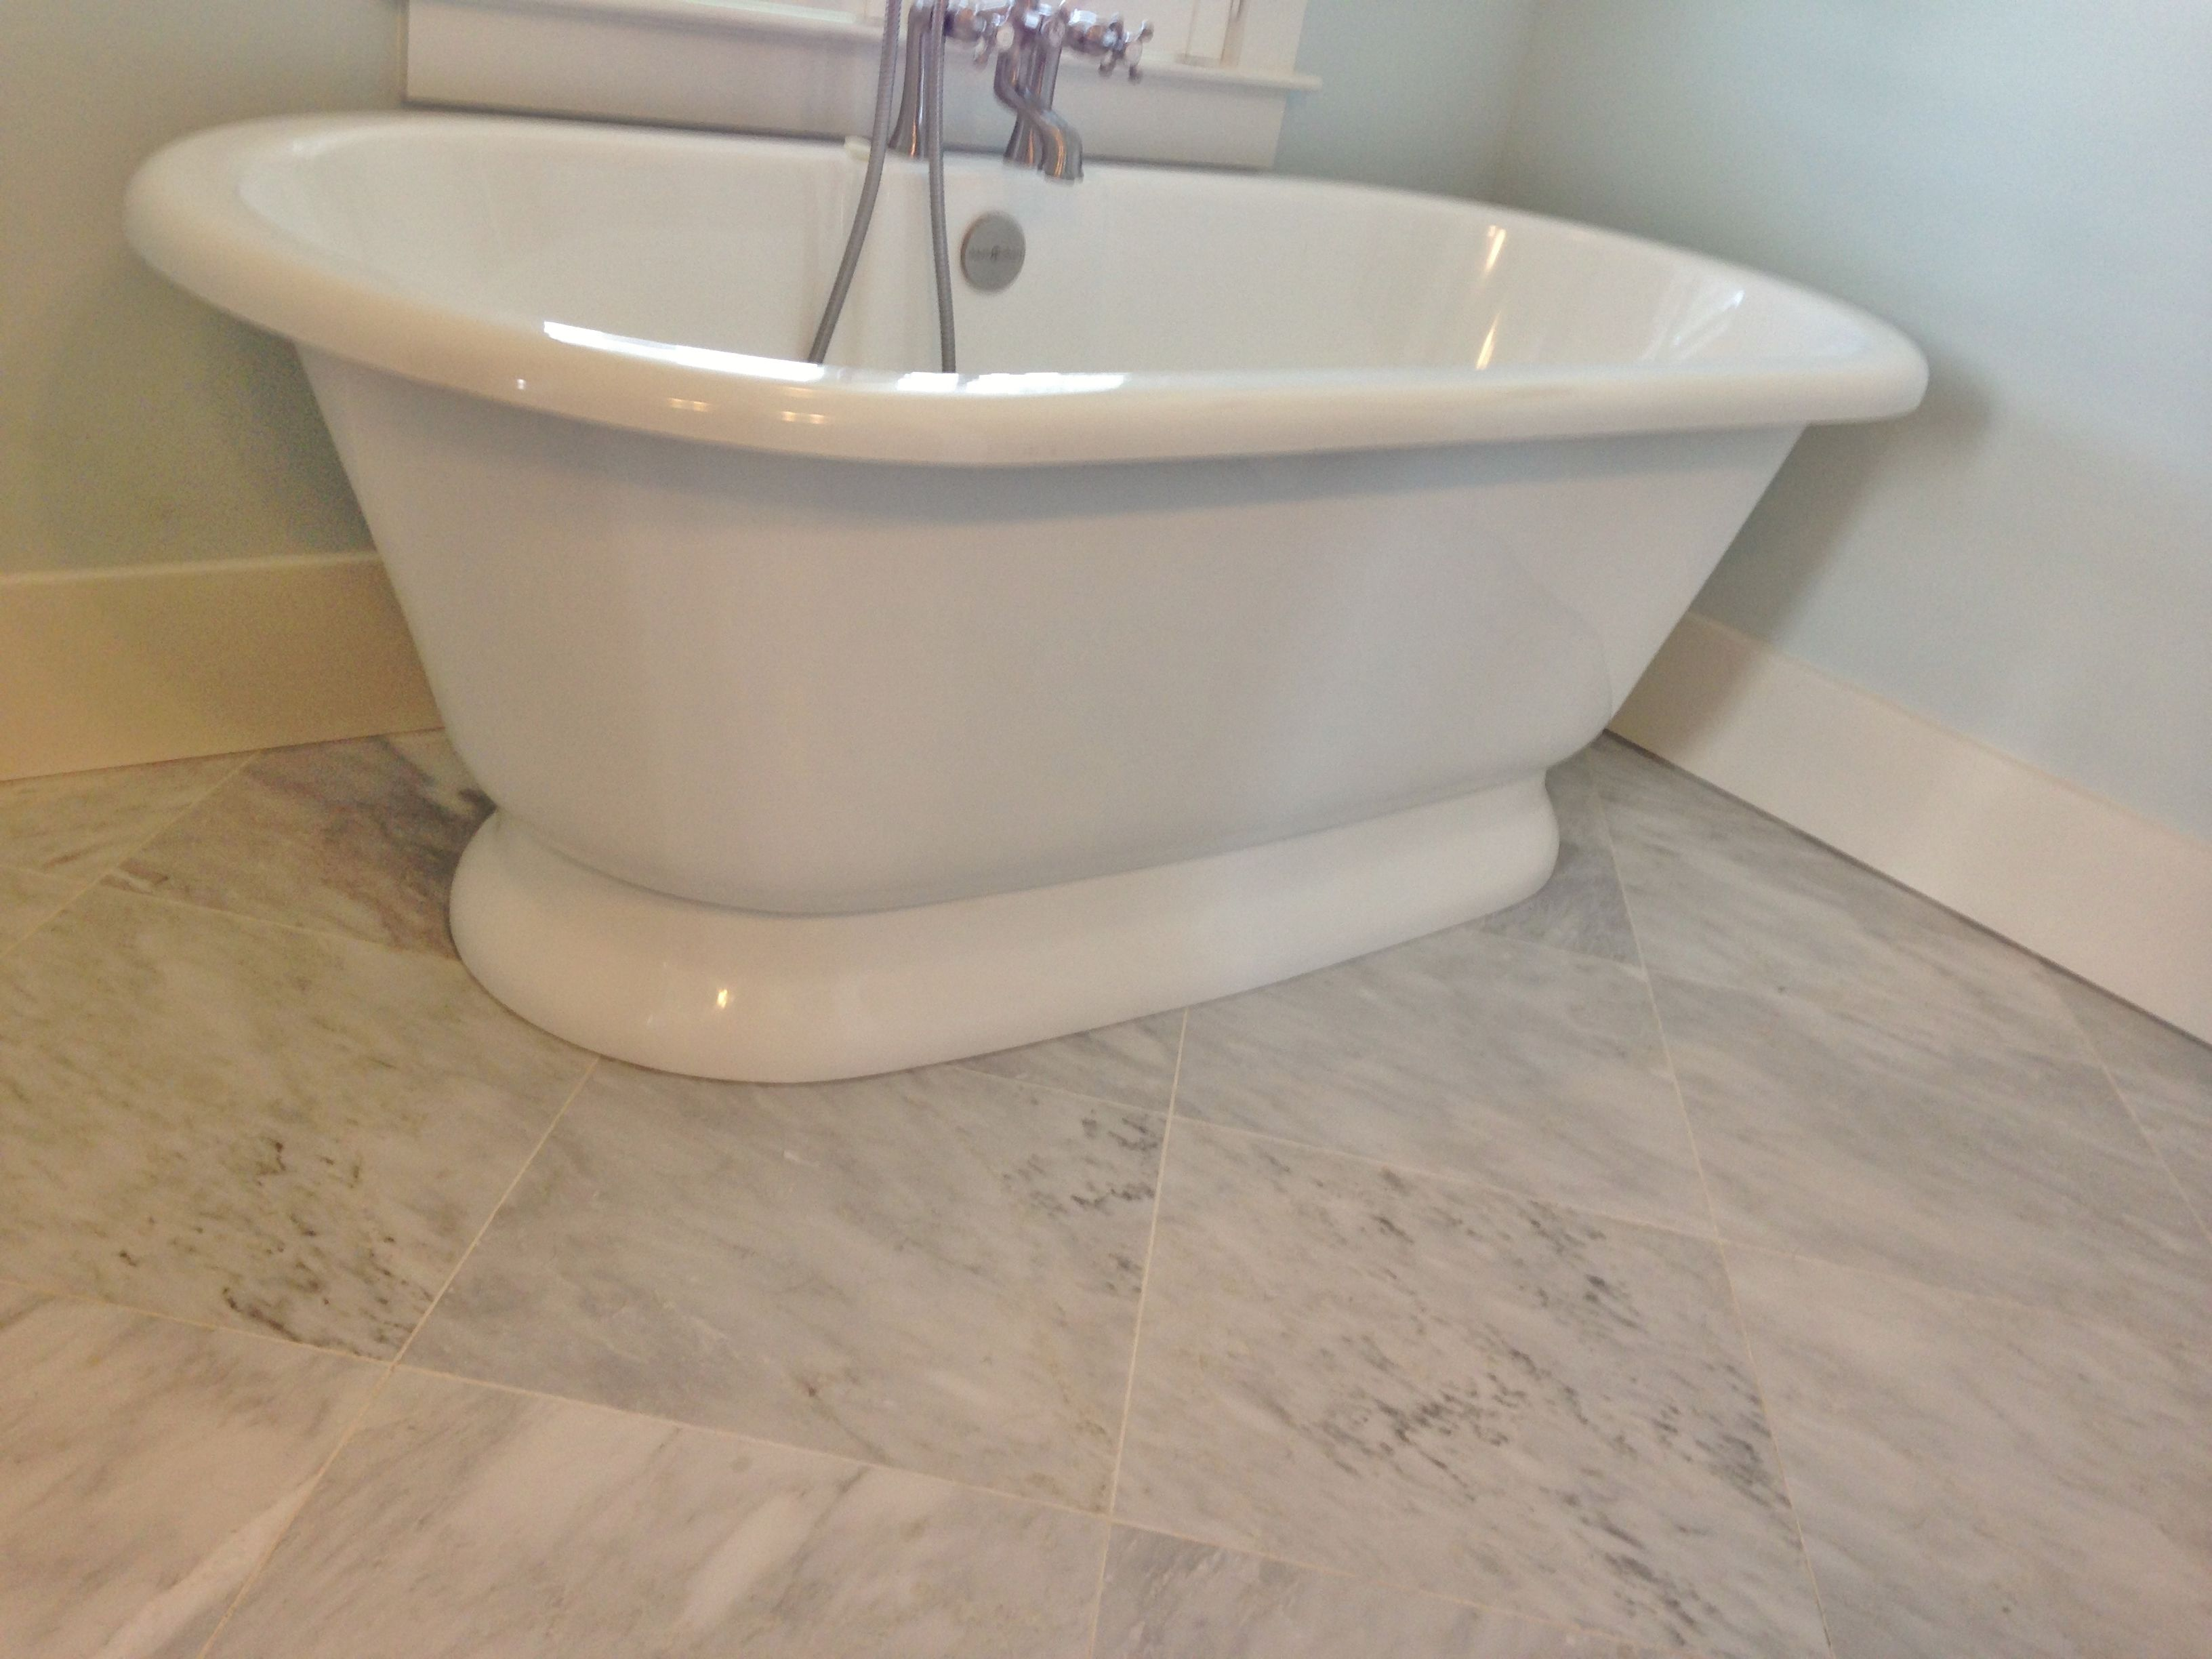 16x16 carrara marble at bathroom floor tile jobs weve done 16x16 carrara marble at bathroom floor dailygadgetfo Gallery